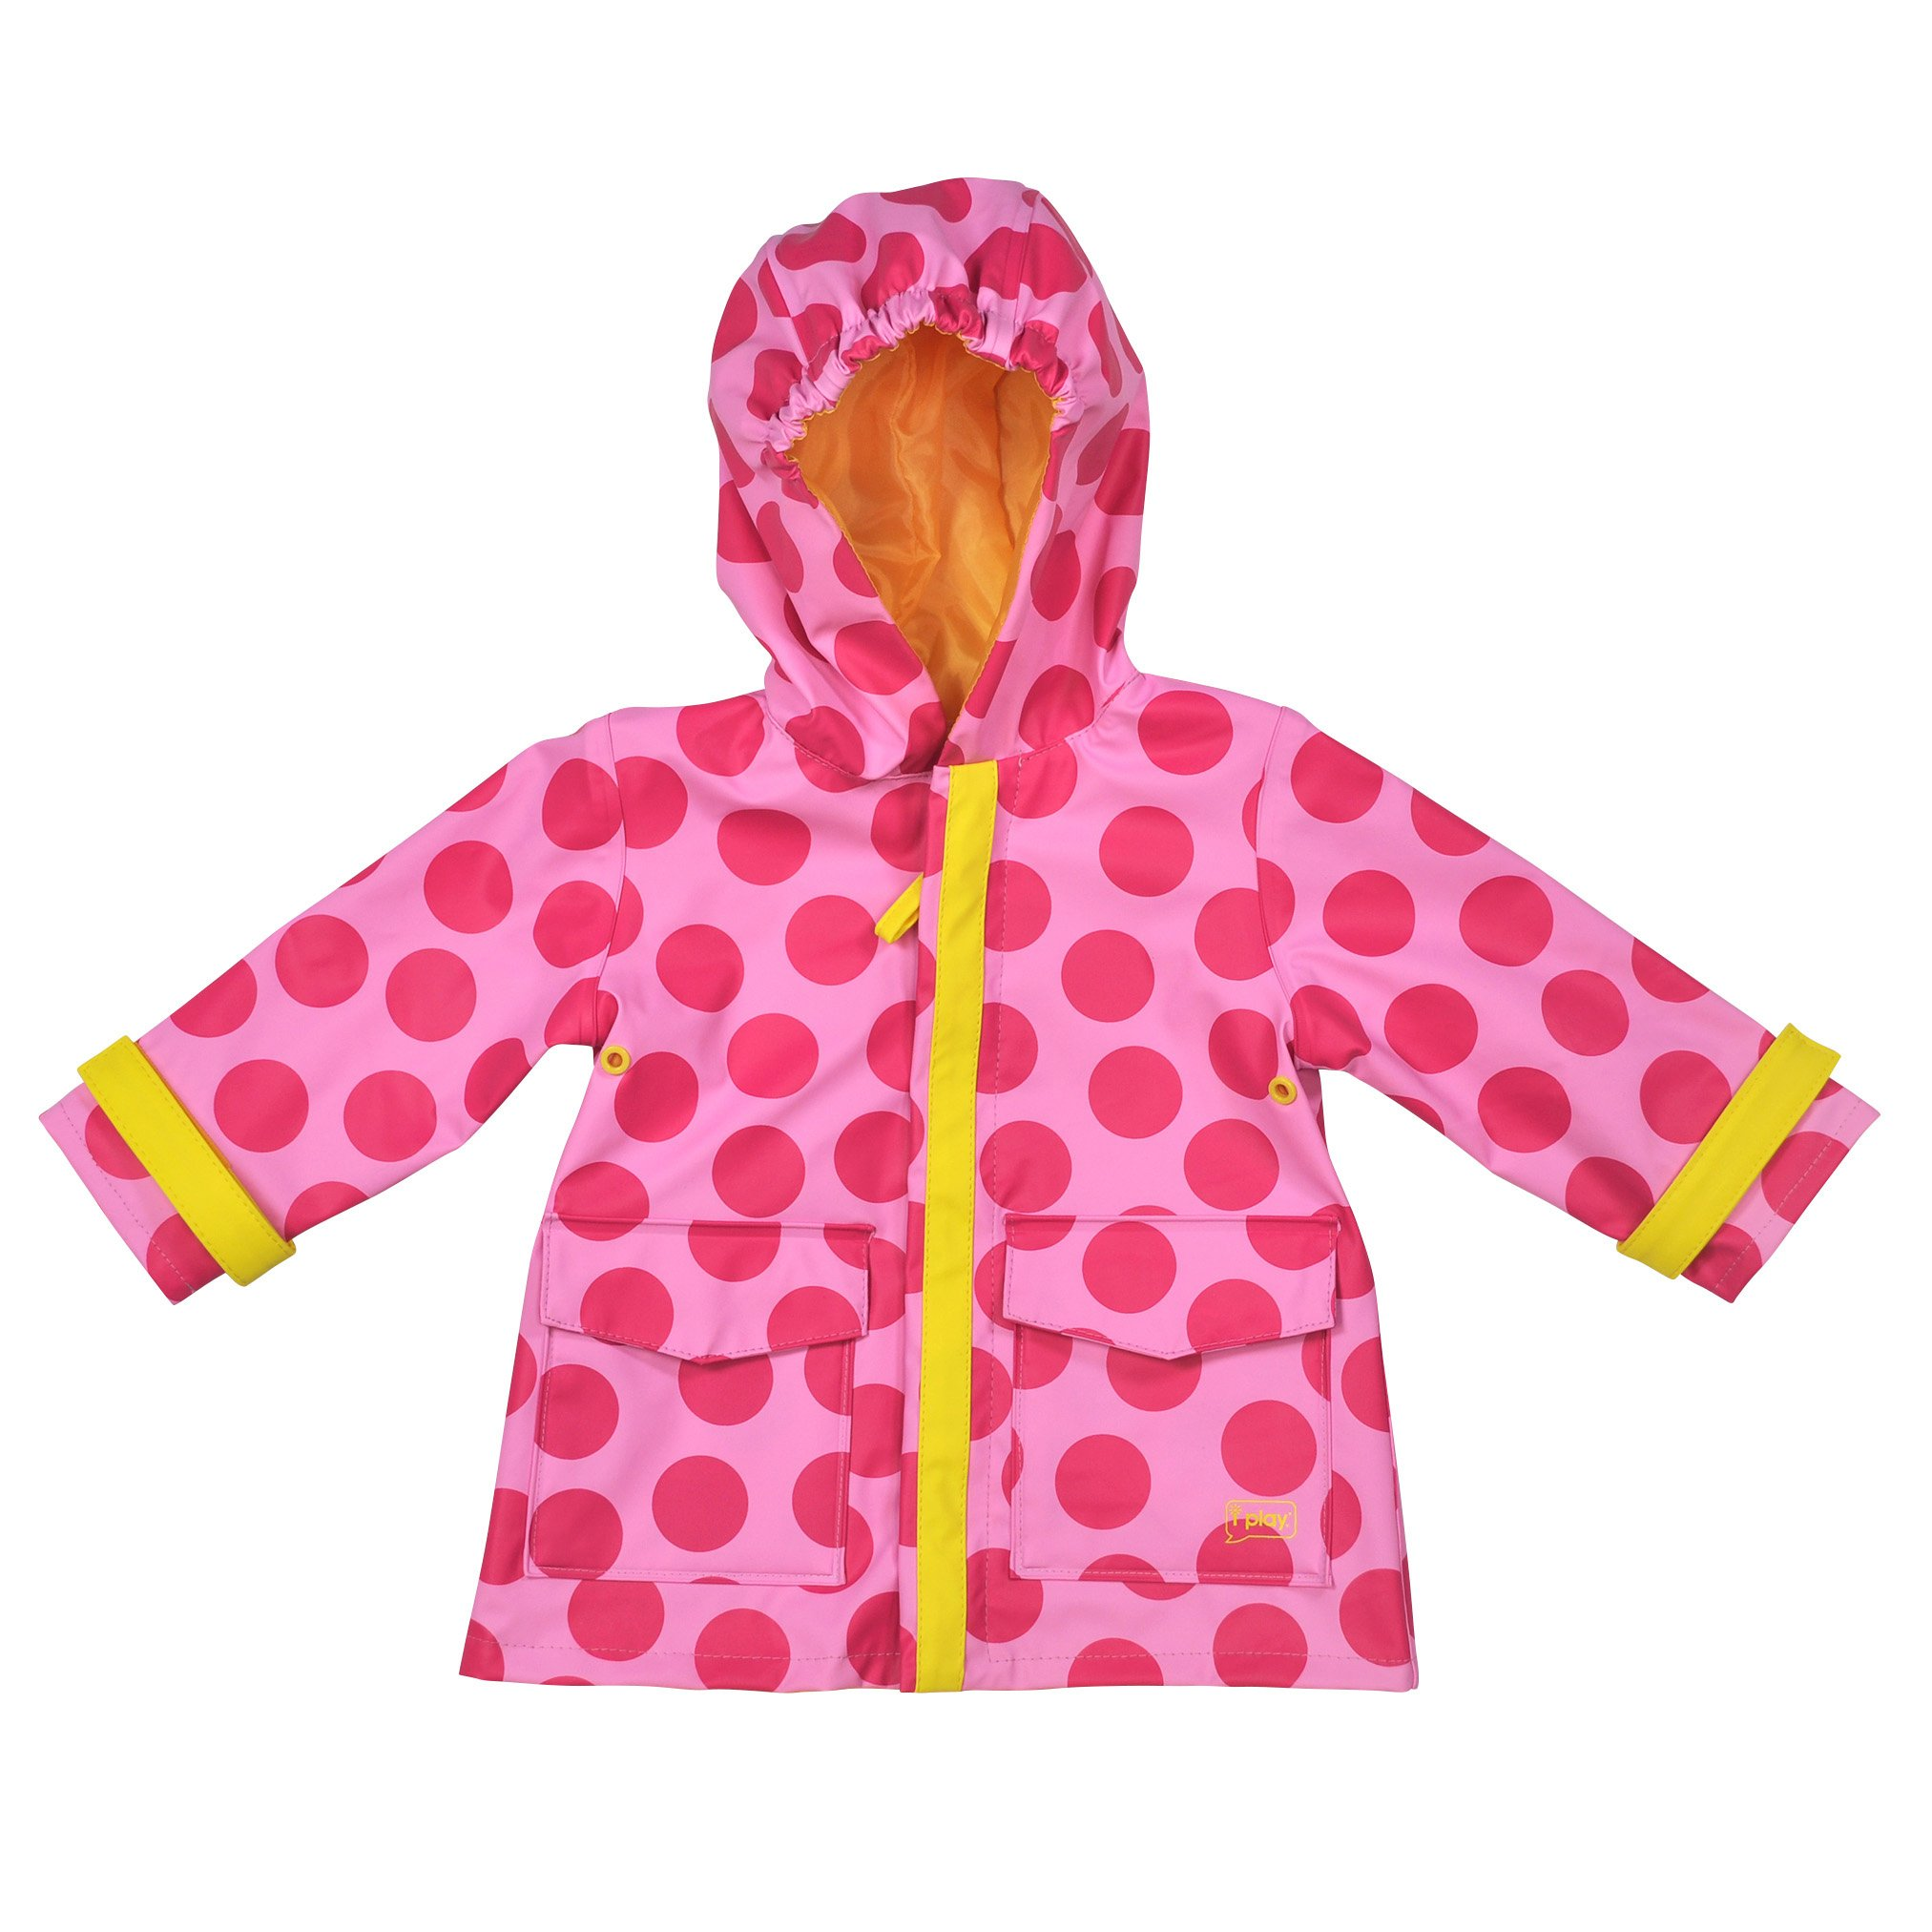 i play. Toddler Midweight Raincoat, Pink Dots, 3T-4T by i play.